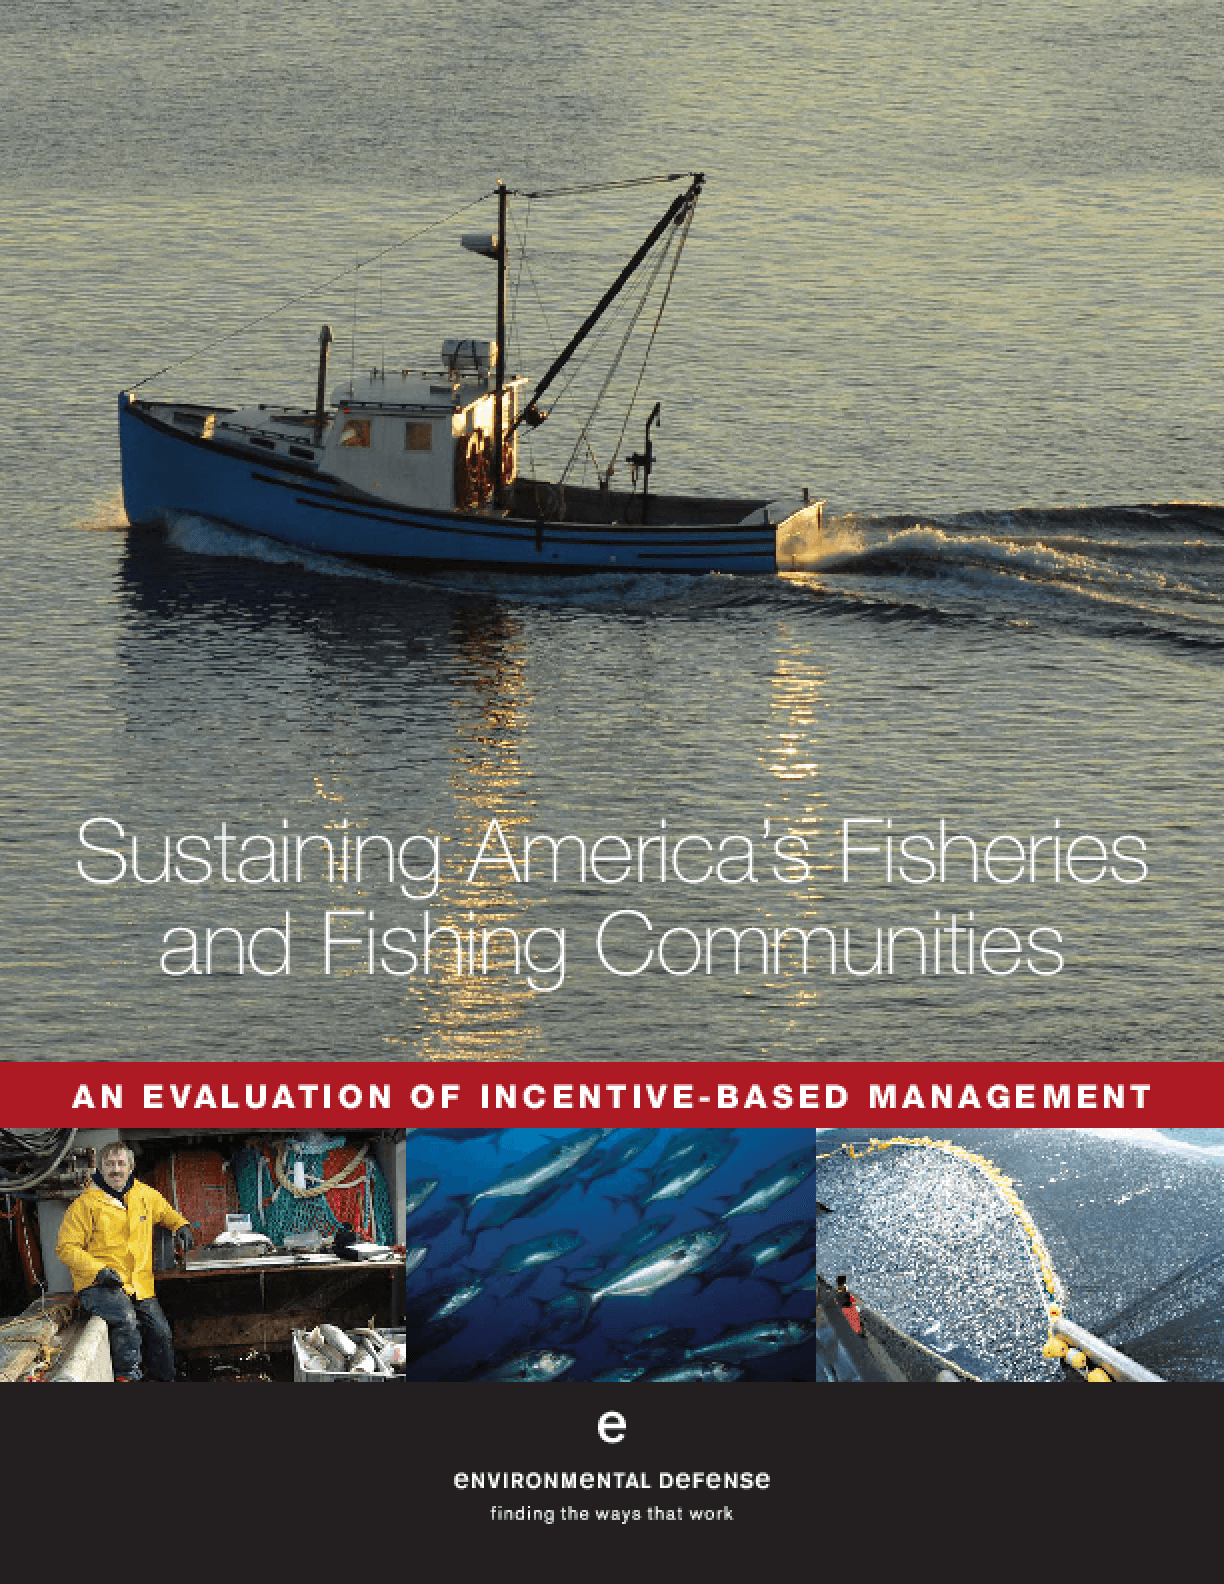 Sustaining America's Fisheries and Fishing Communities: An Evaluation of Incentive-Based Management